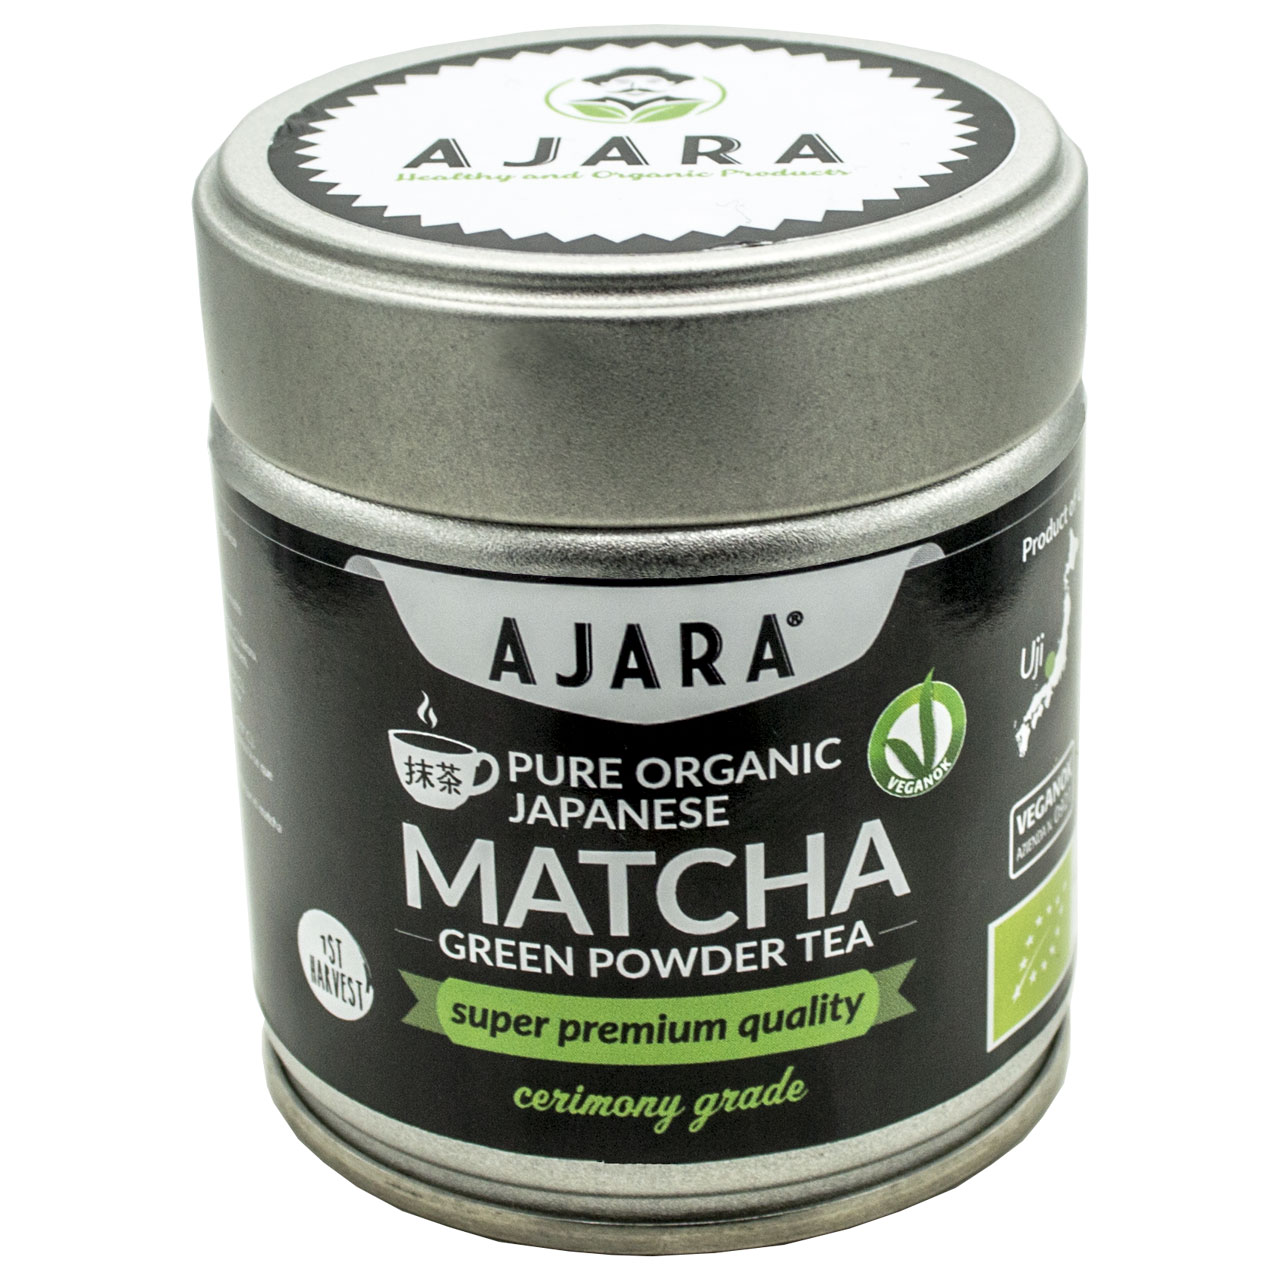 Powdered ceremonial Matcha tea